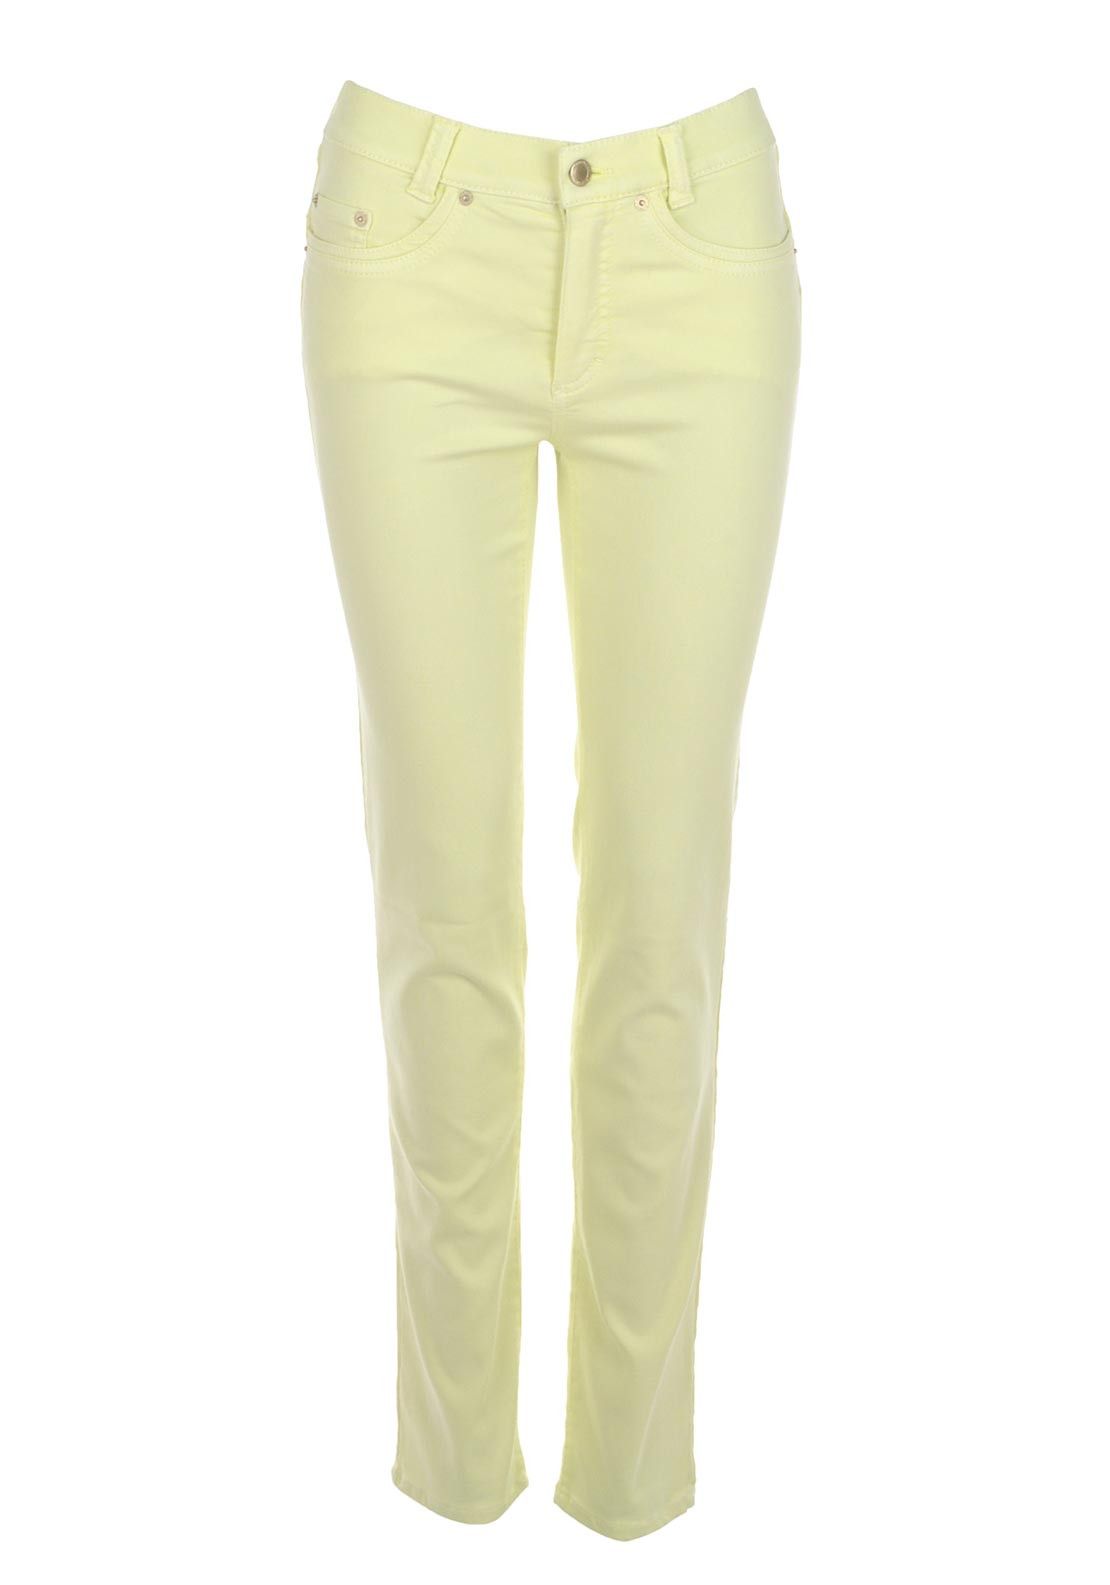 Anna Montana Angelika Super Stretch Slim Leg Jeans, Lemon Yellow